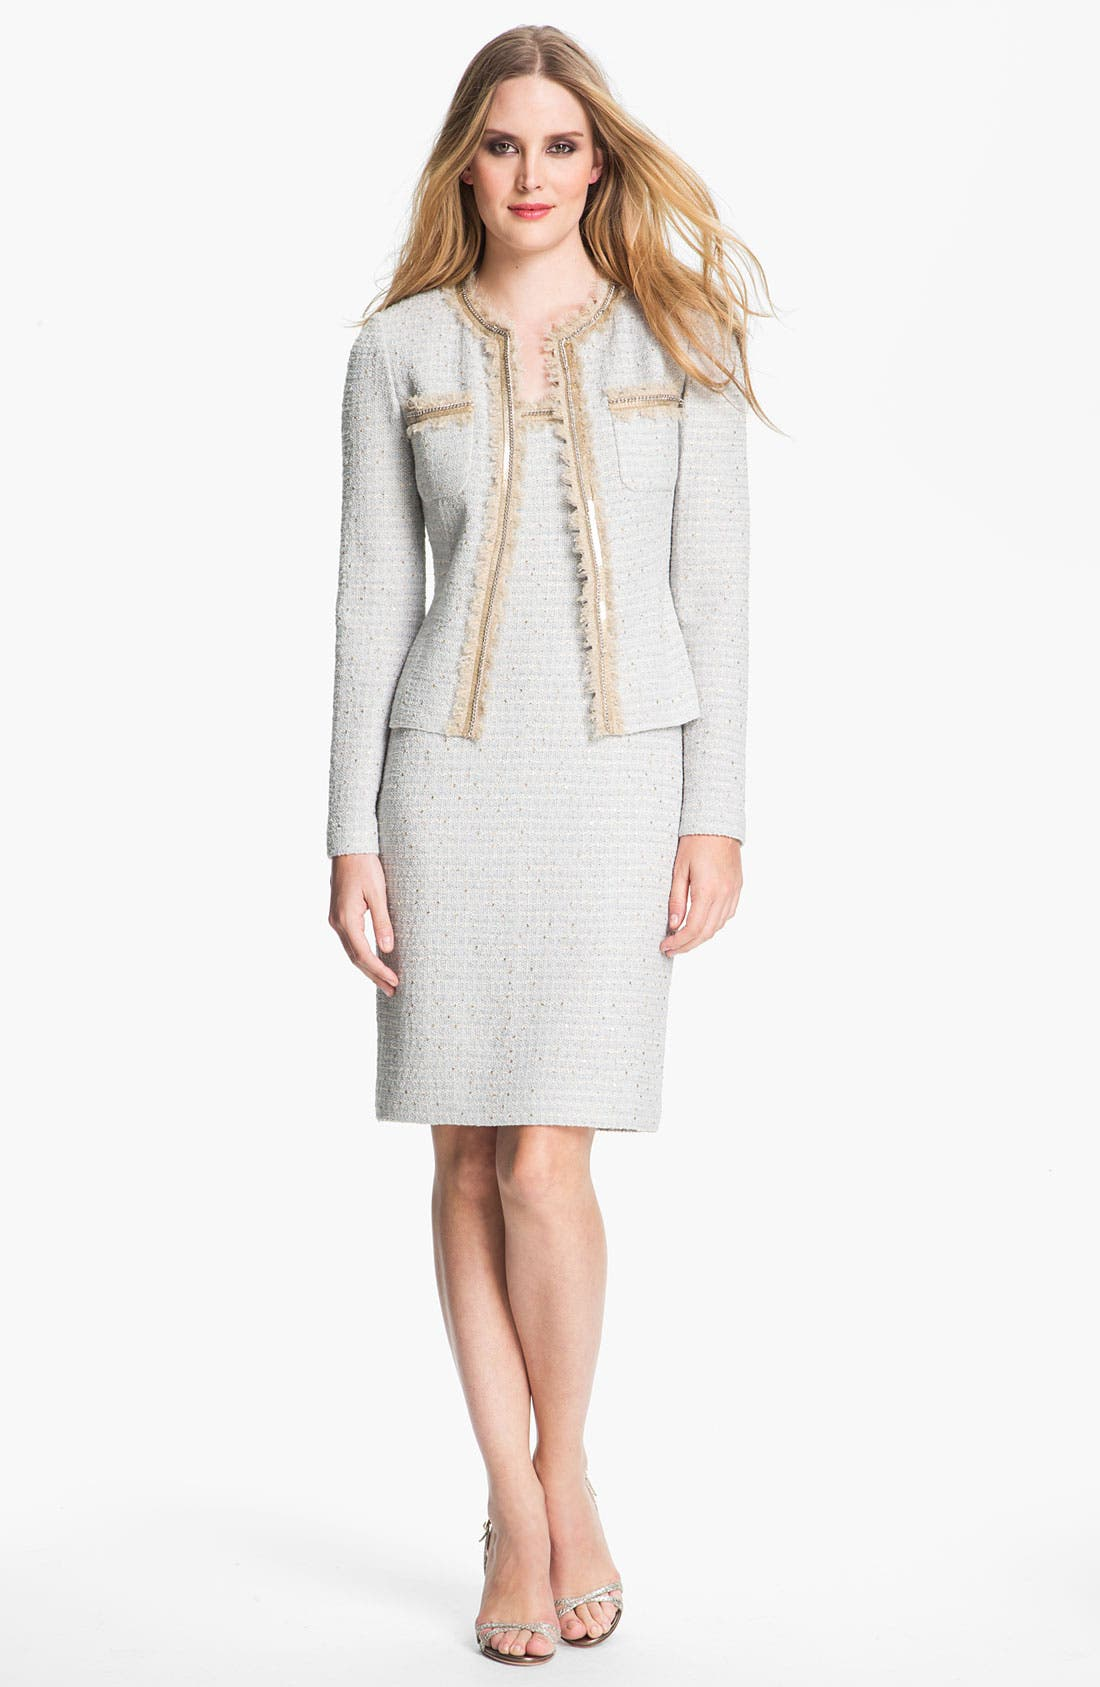 Main Image - St. John Collection Sequin Ice Tweed Knit Jacket